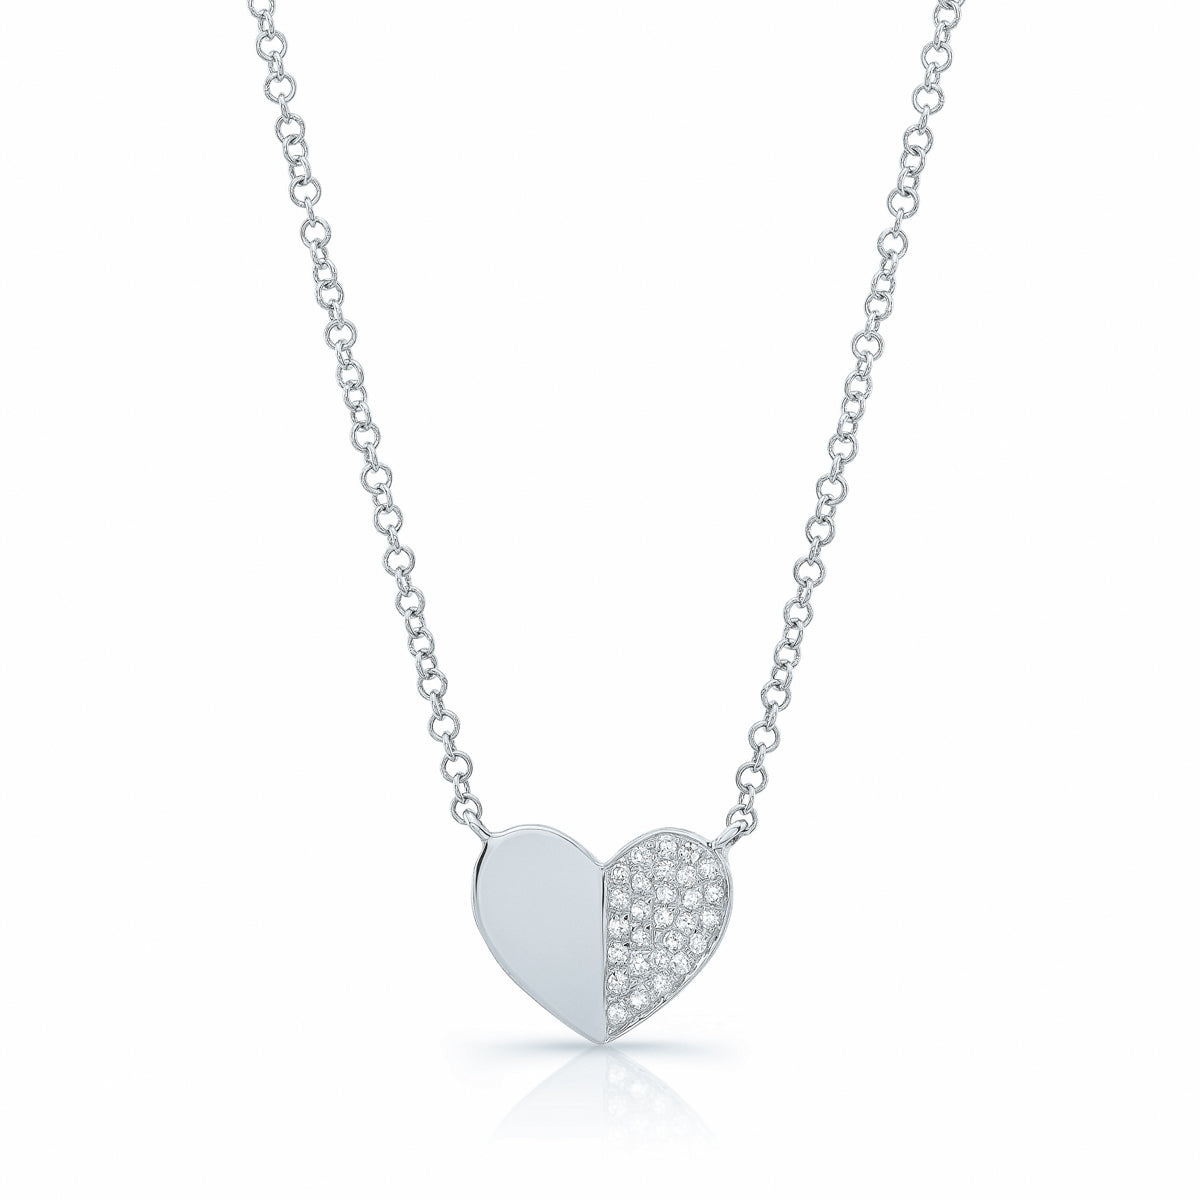 Half Pave Half Solid Gold Heart Necklace